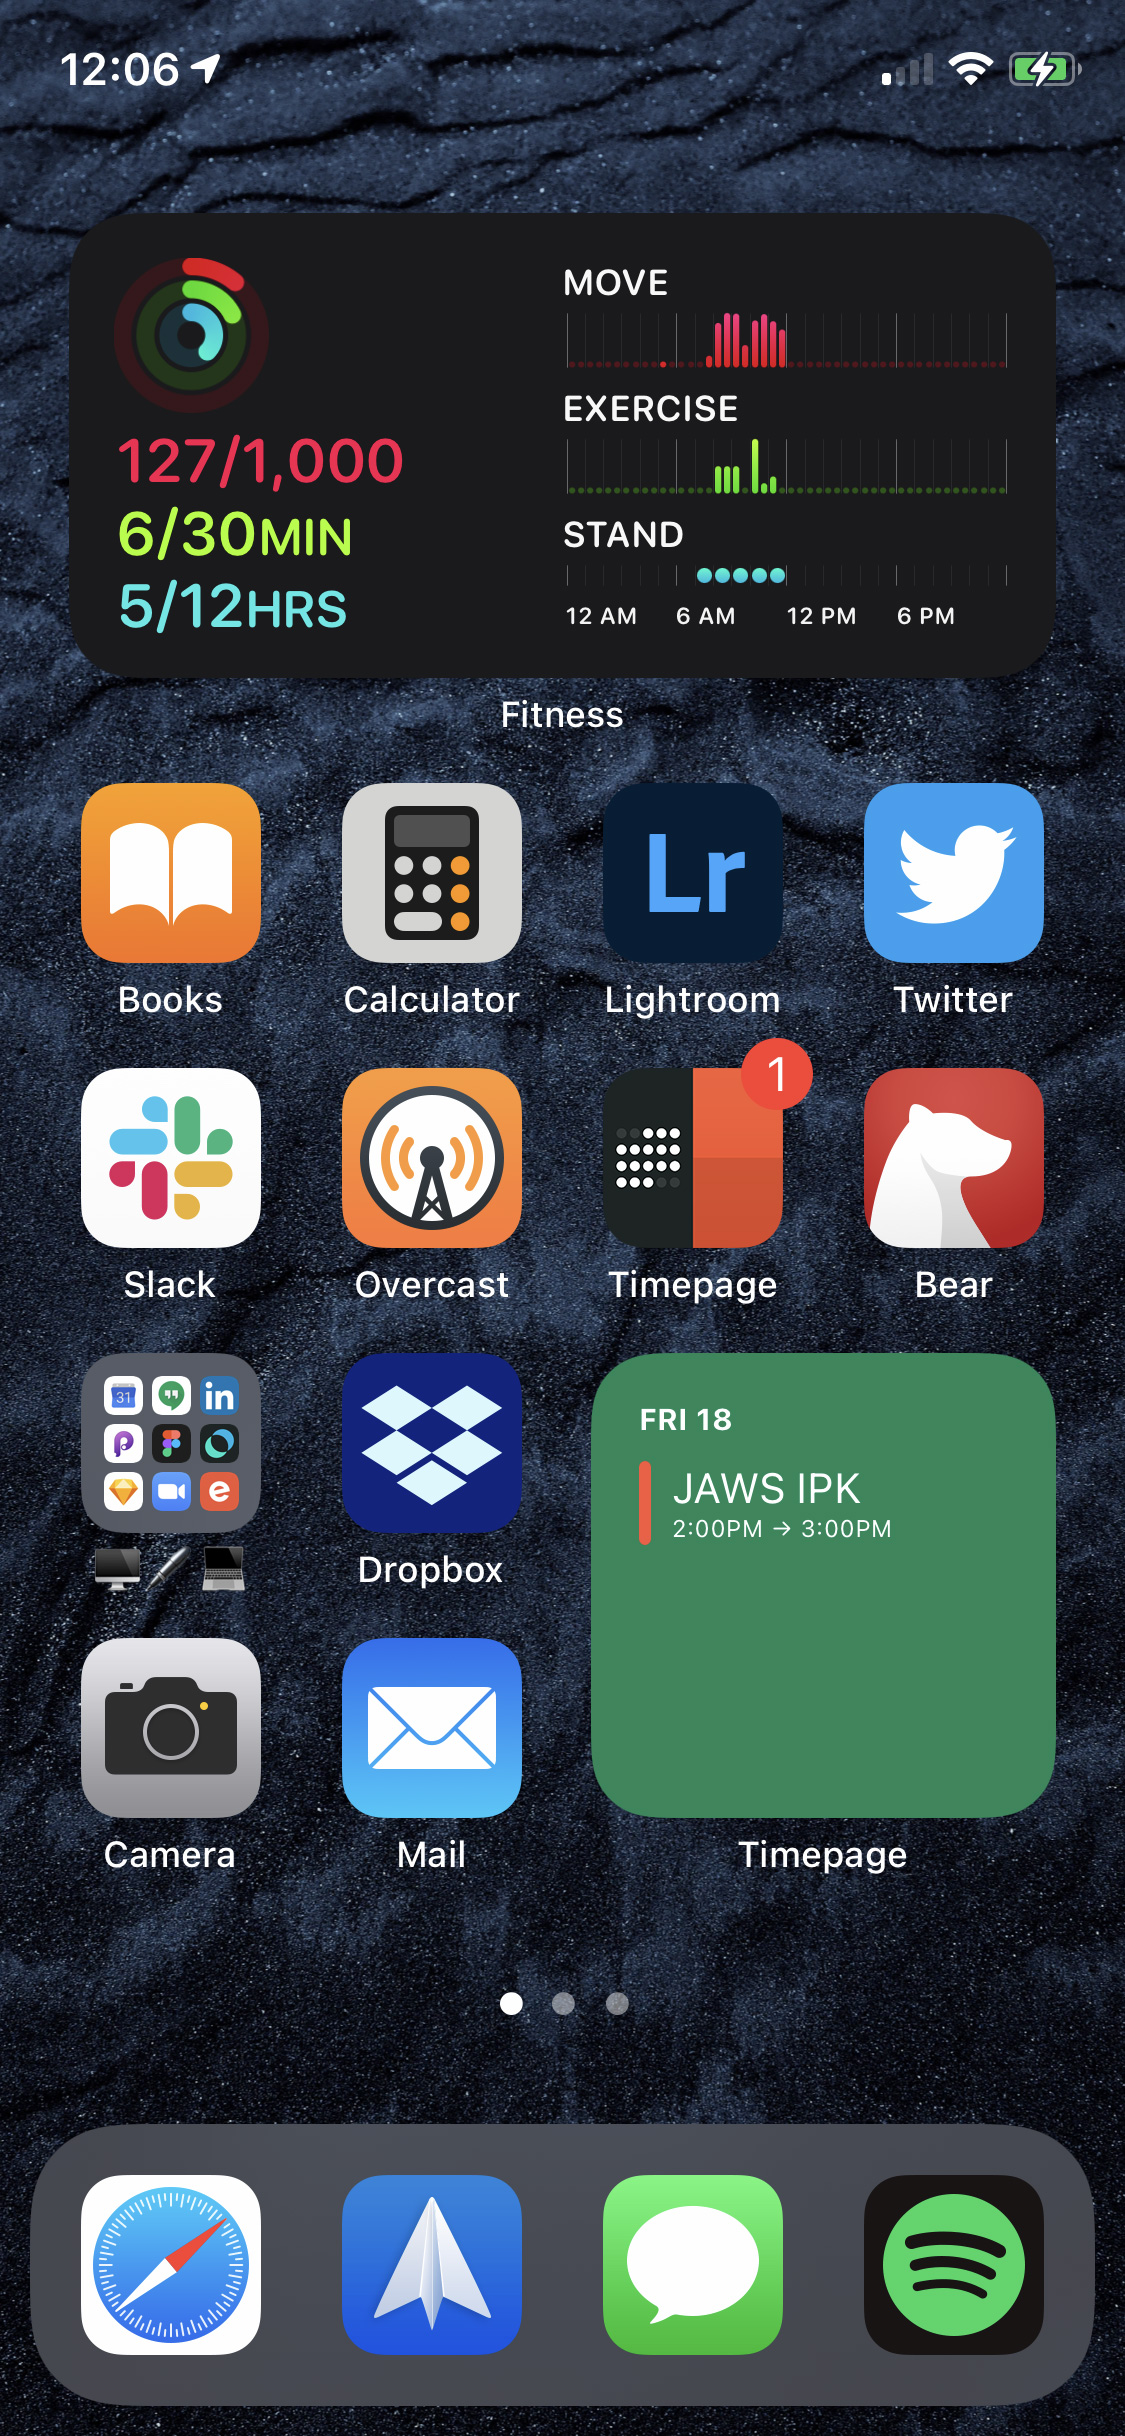 Home Screen 1 - Most Used Apps and Work-Related Apps